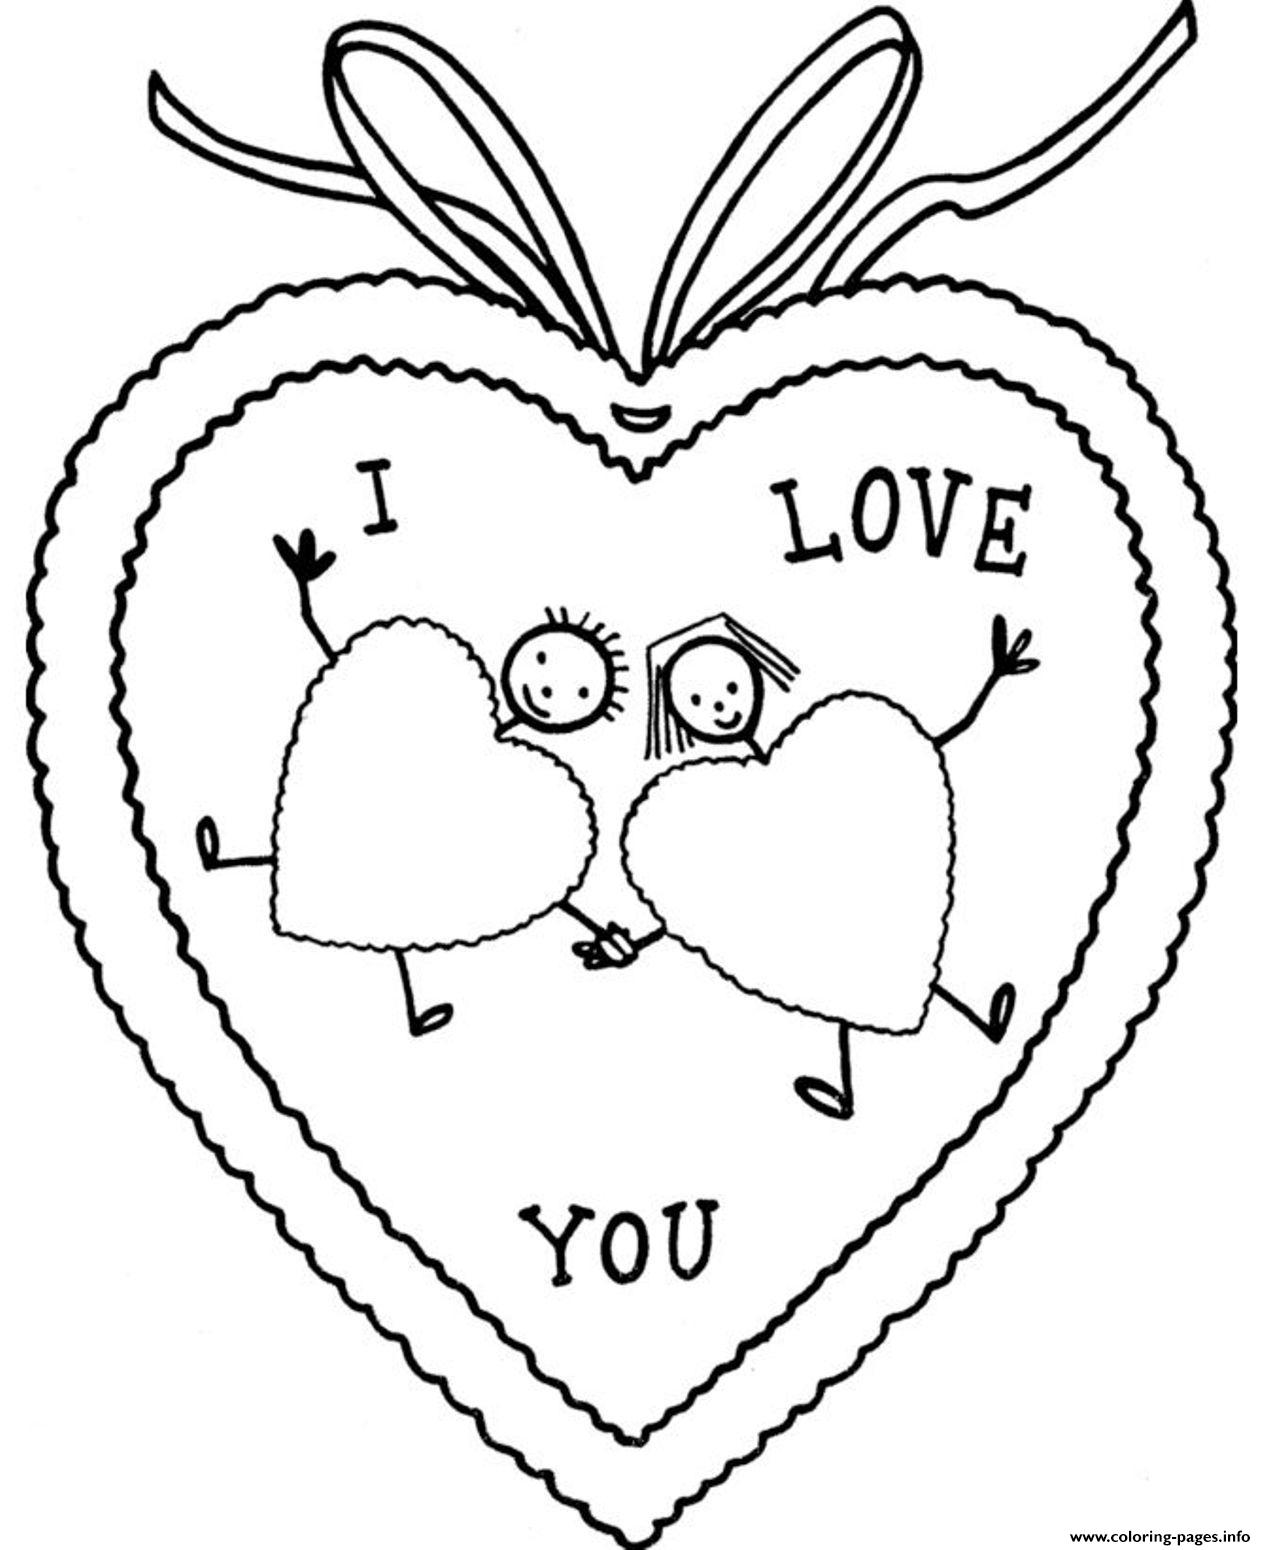 Valentines Day S I Love You8c37 Coloring Pages Printable